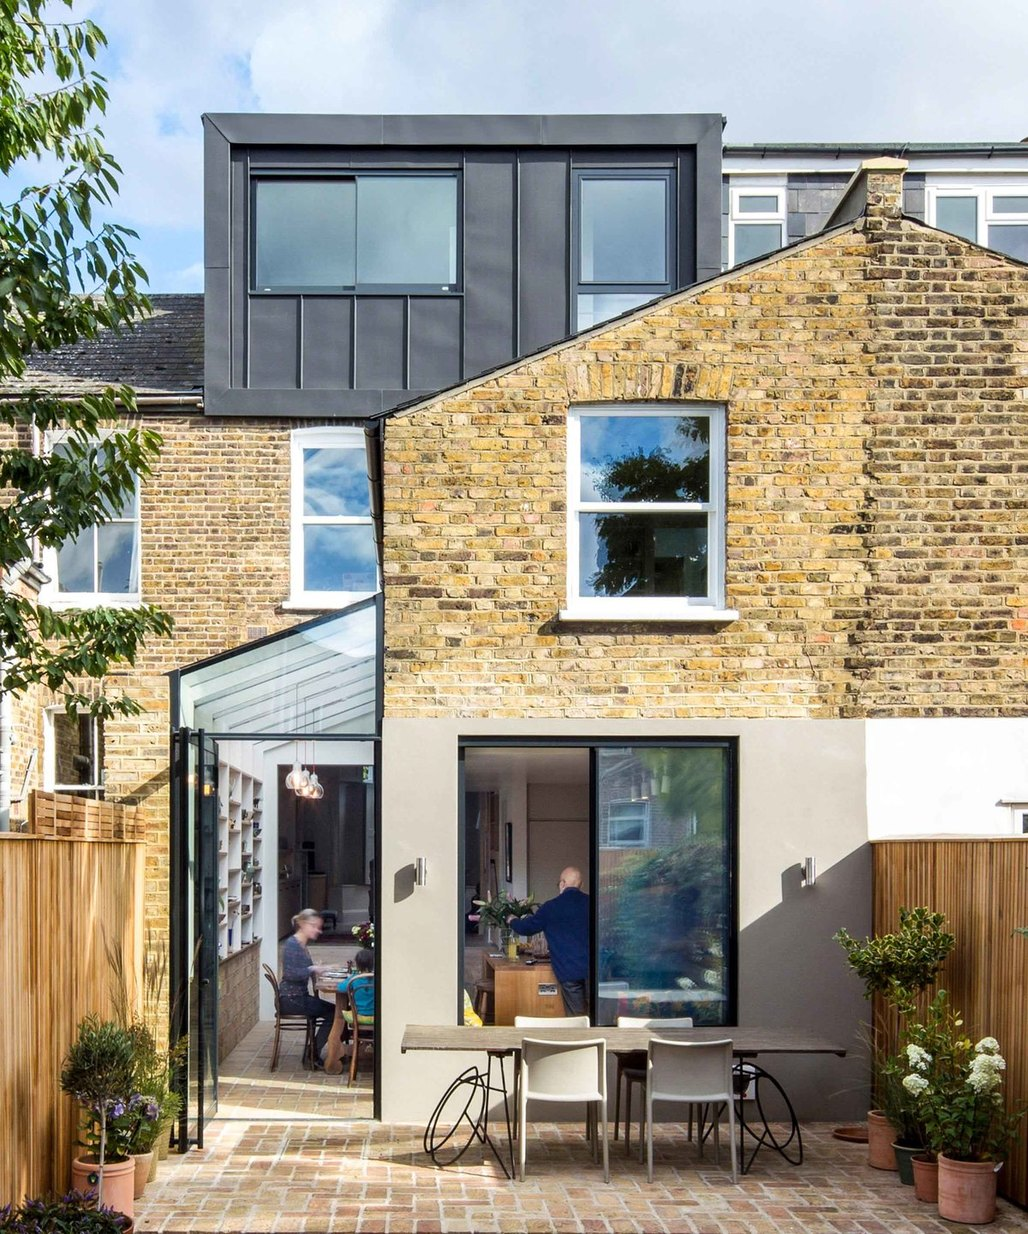 House in Hackney by Neil Dusheiko Architects. Photo credits: Tim Crocker and Agnes Sanvito.